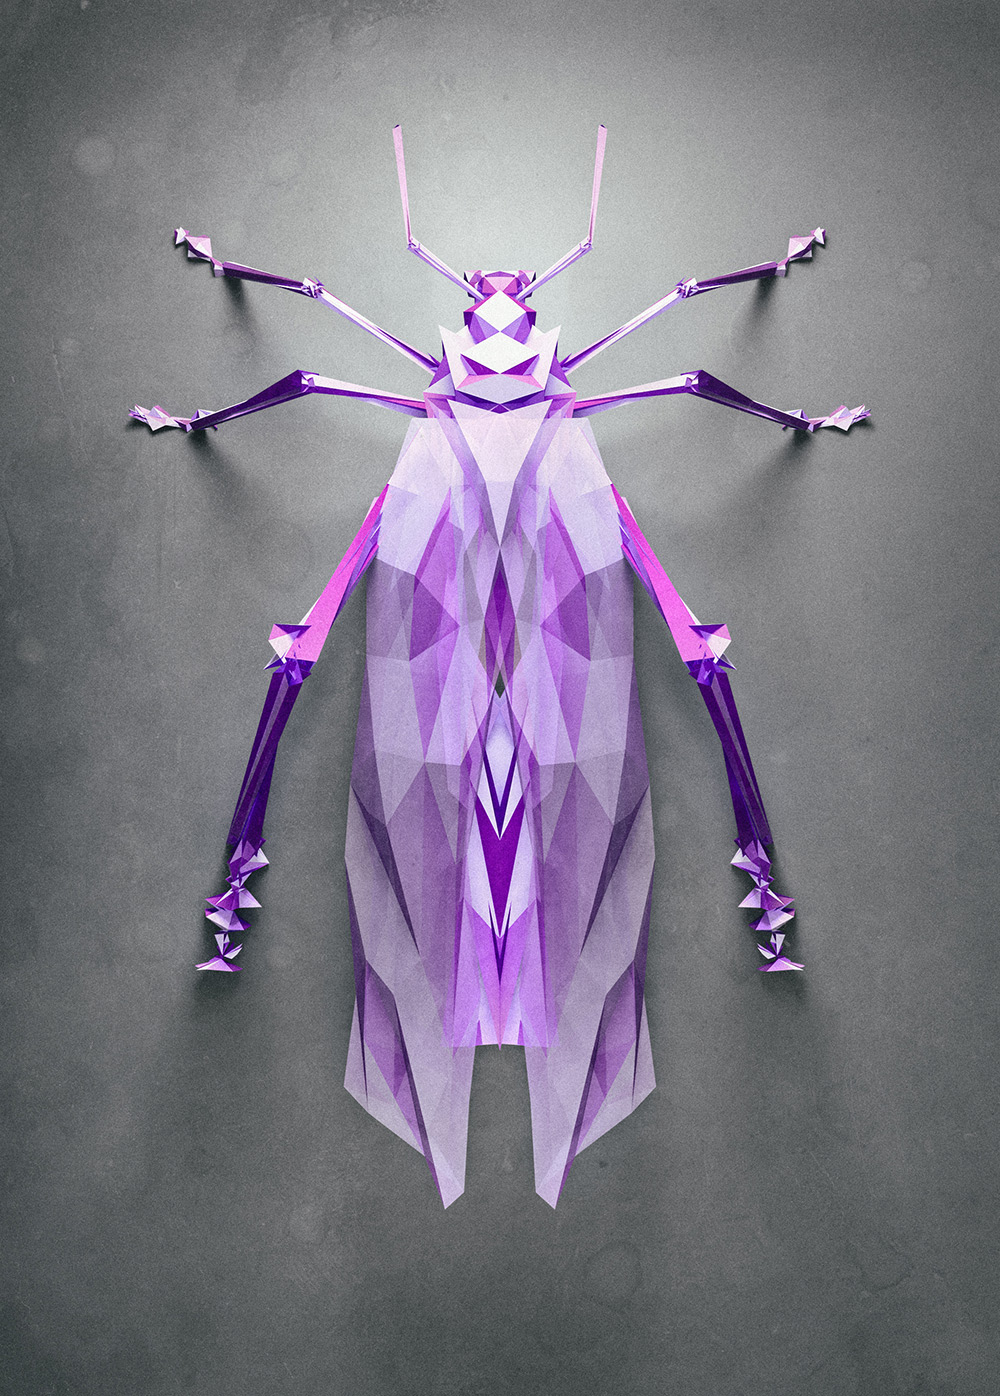 3d insects 1 Generative Polygonal Insects With Cinema 4D